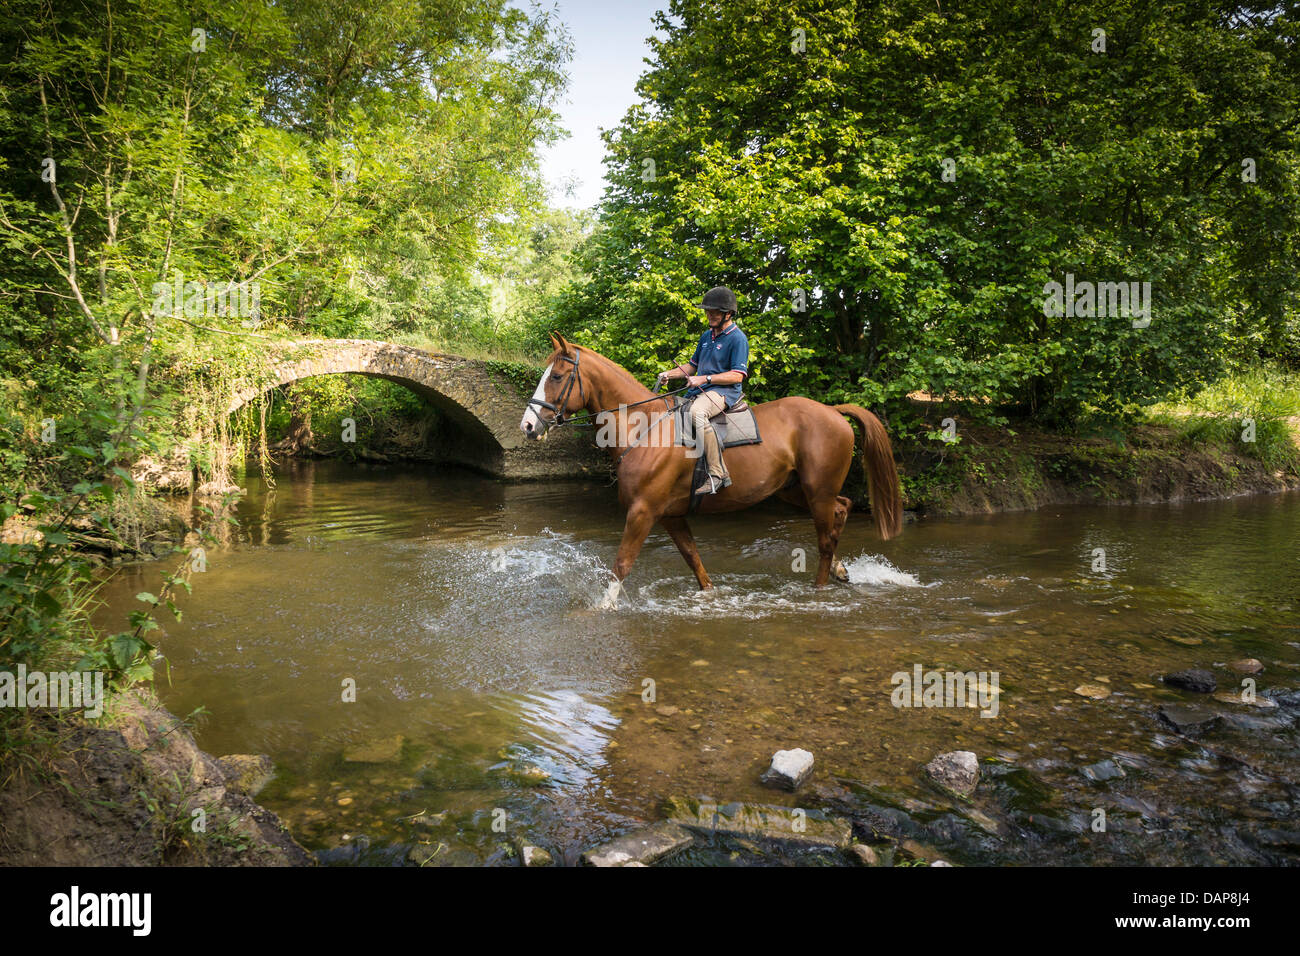 A horse and rider cross a small stream on the Fosse Way in Wiltshire. - Stock Image